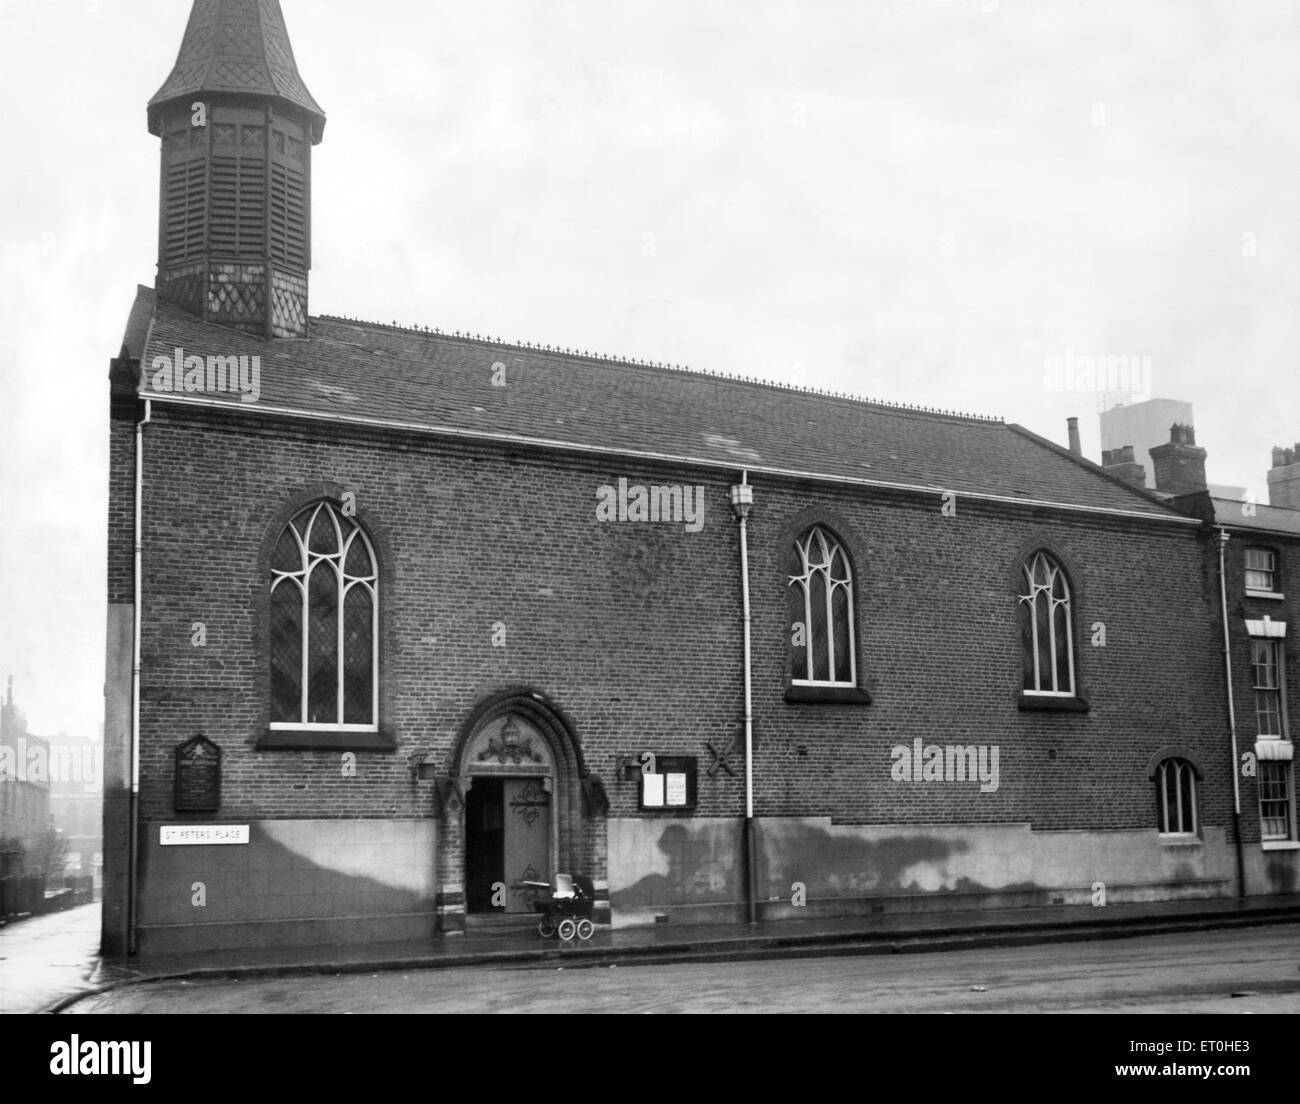 Exterior view of St. Peters Church at St Peter's Place, Broad Street in central Birmingham. February 1954. - Stock Image